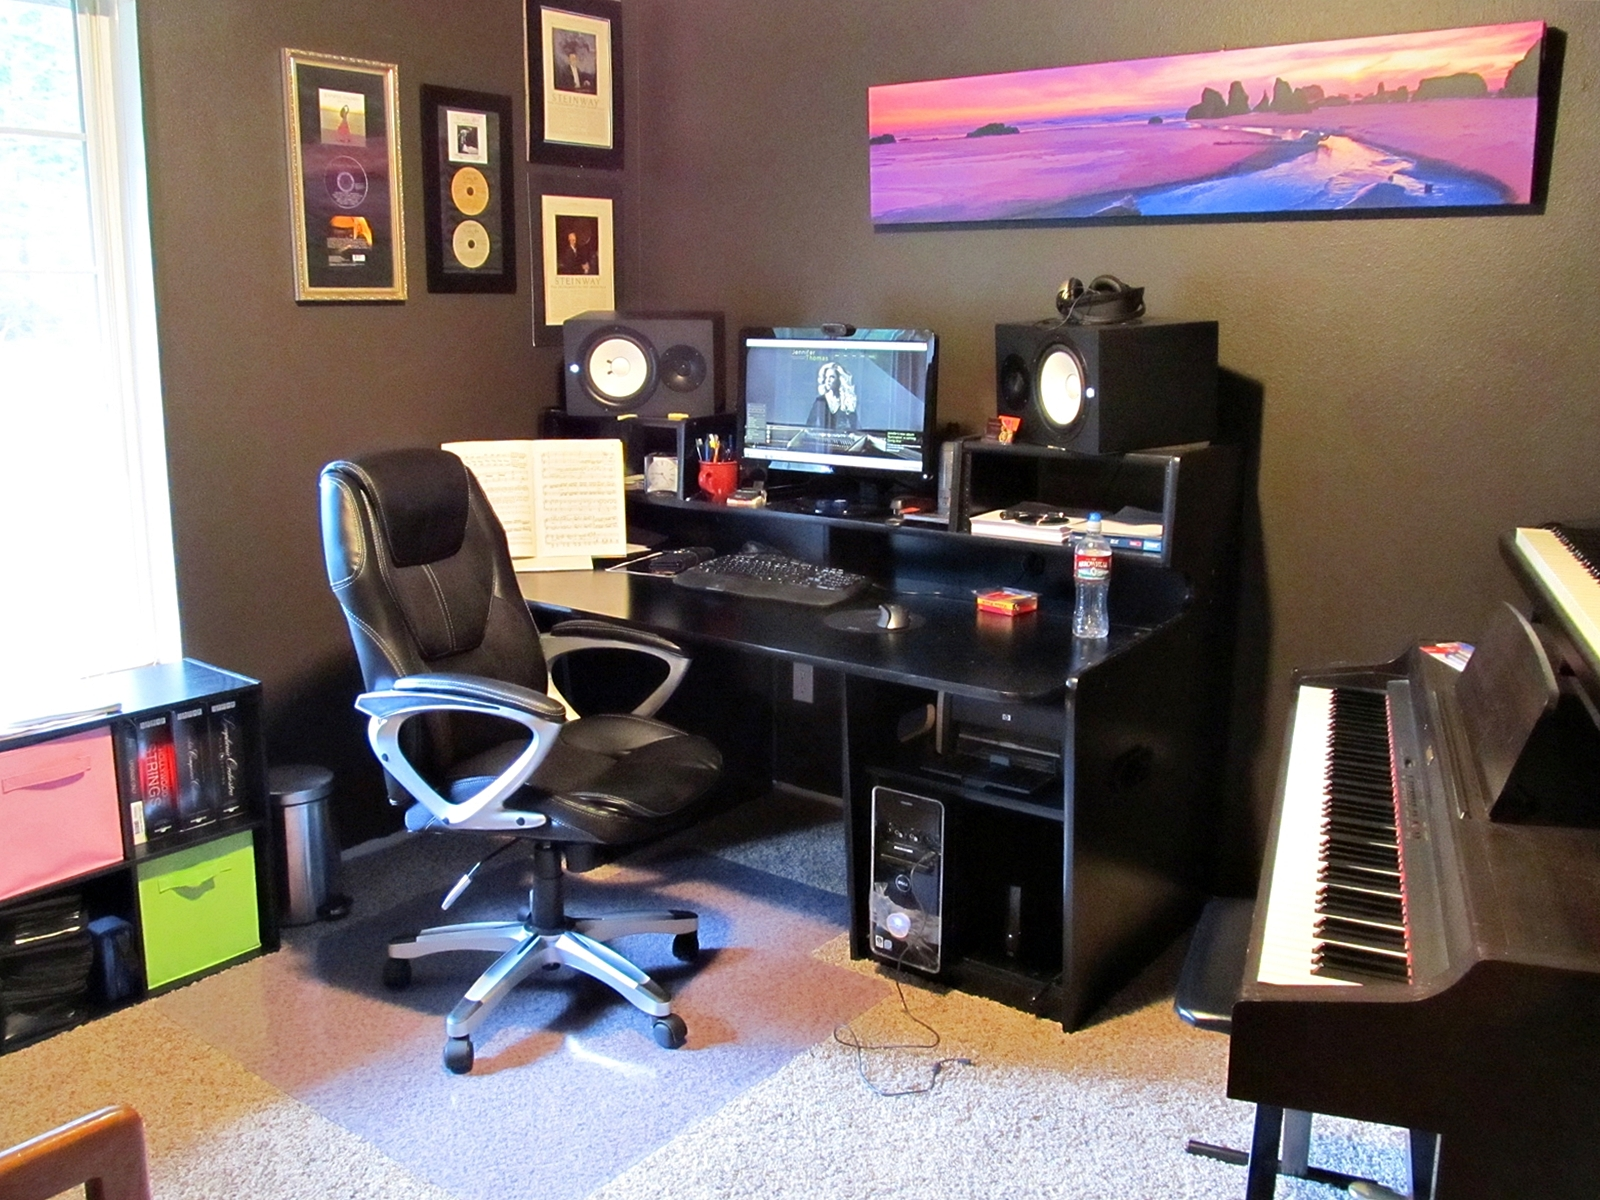 Admirable Diy Music Studio Musical Meanderings Largest Home Design Picture Inspirations Pitcheantrous